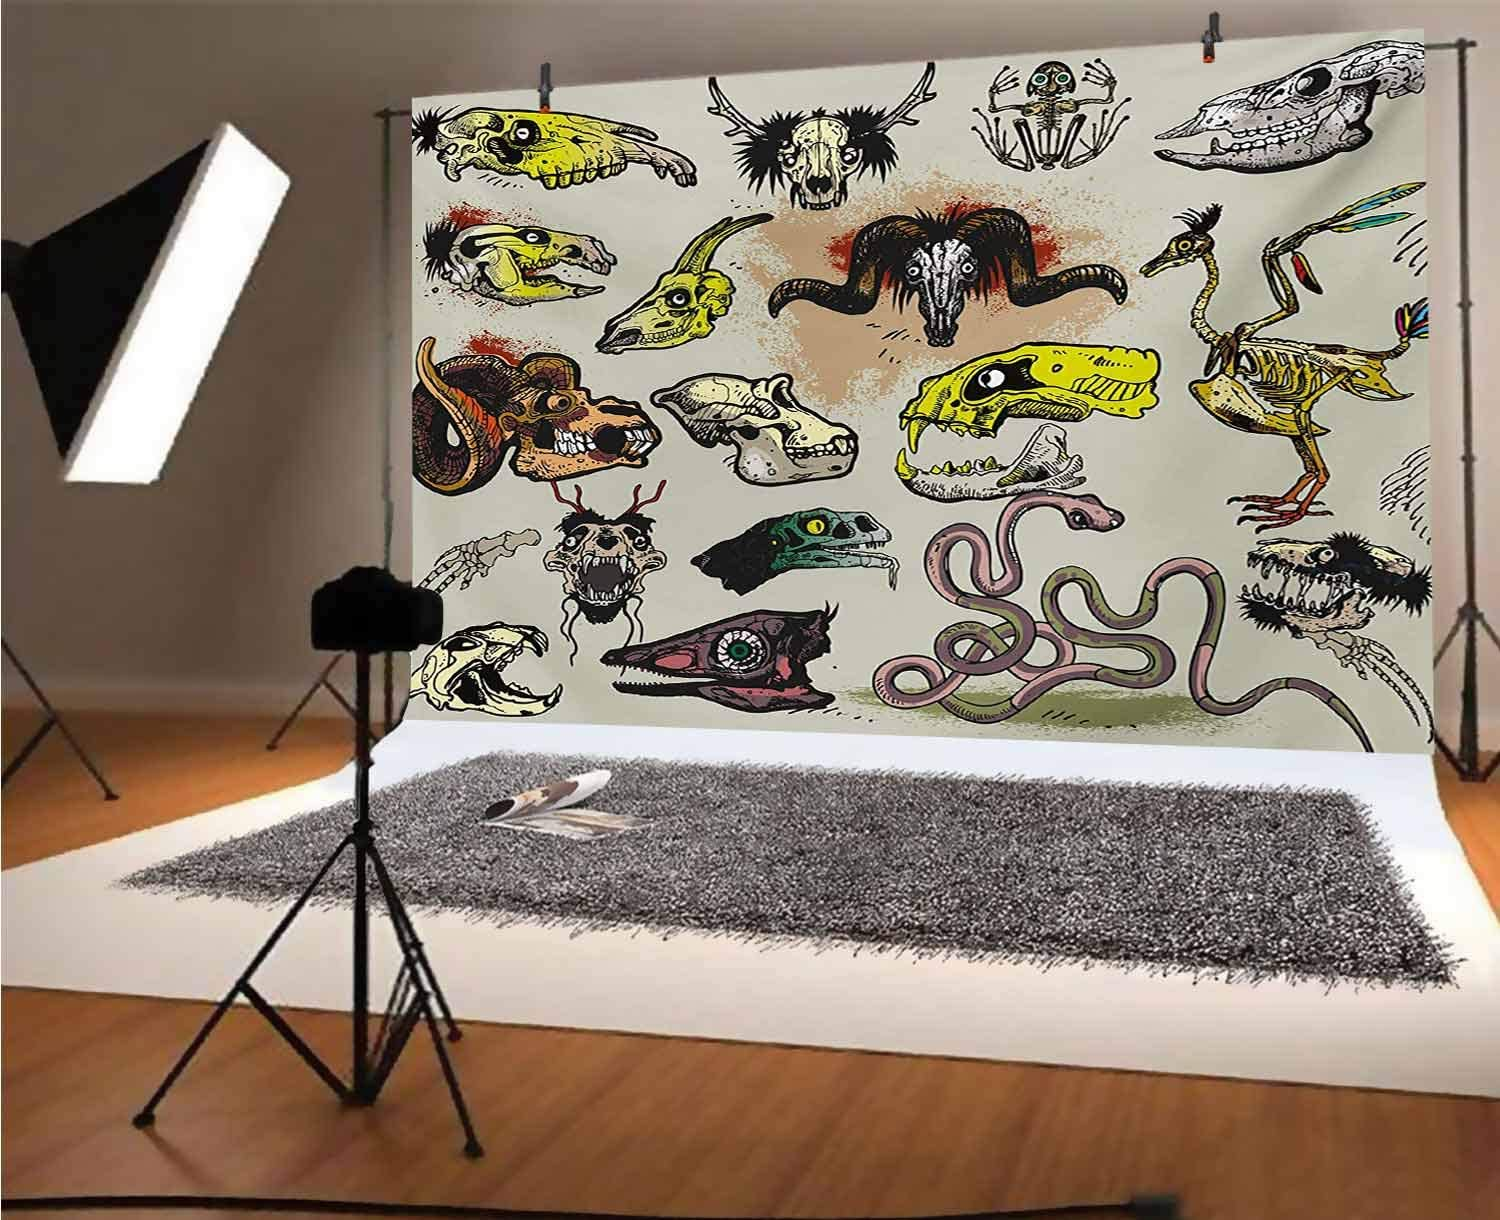 Modern 15x10 FT Vinyl Backdrop PhotographersAnimal Skeleton Icons Composition with Gothic Faces Dead Creatures Illustration Background for Party Home Decor Outdoorsy Theme Shoot Props